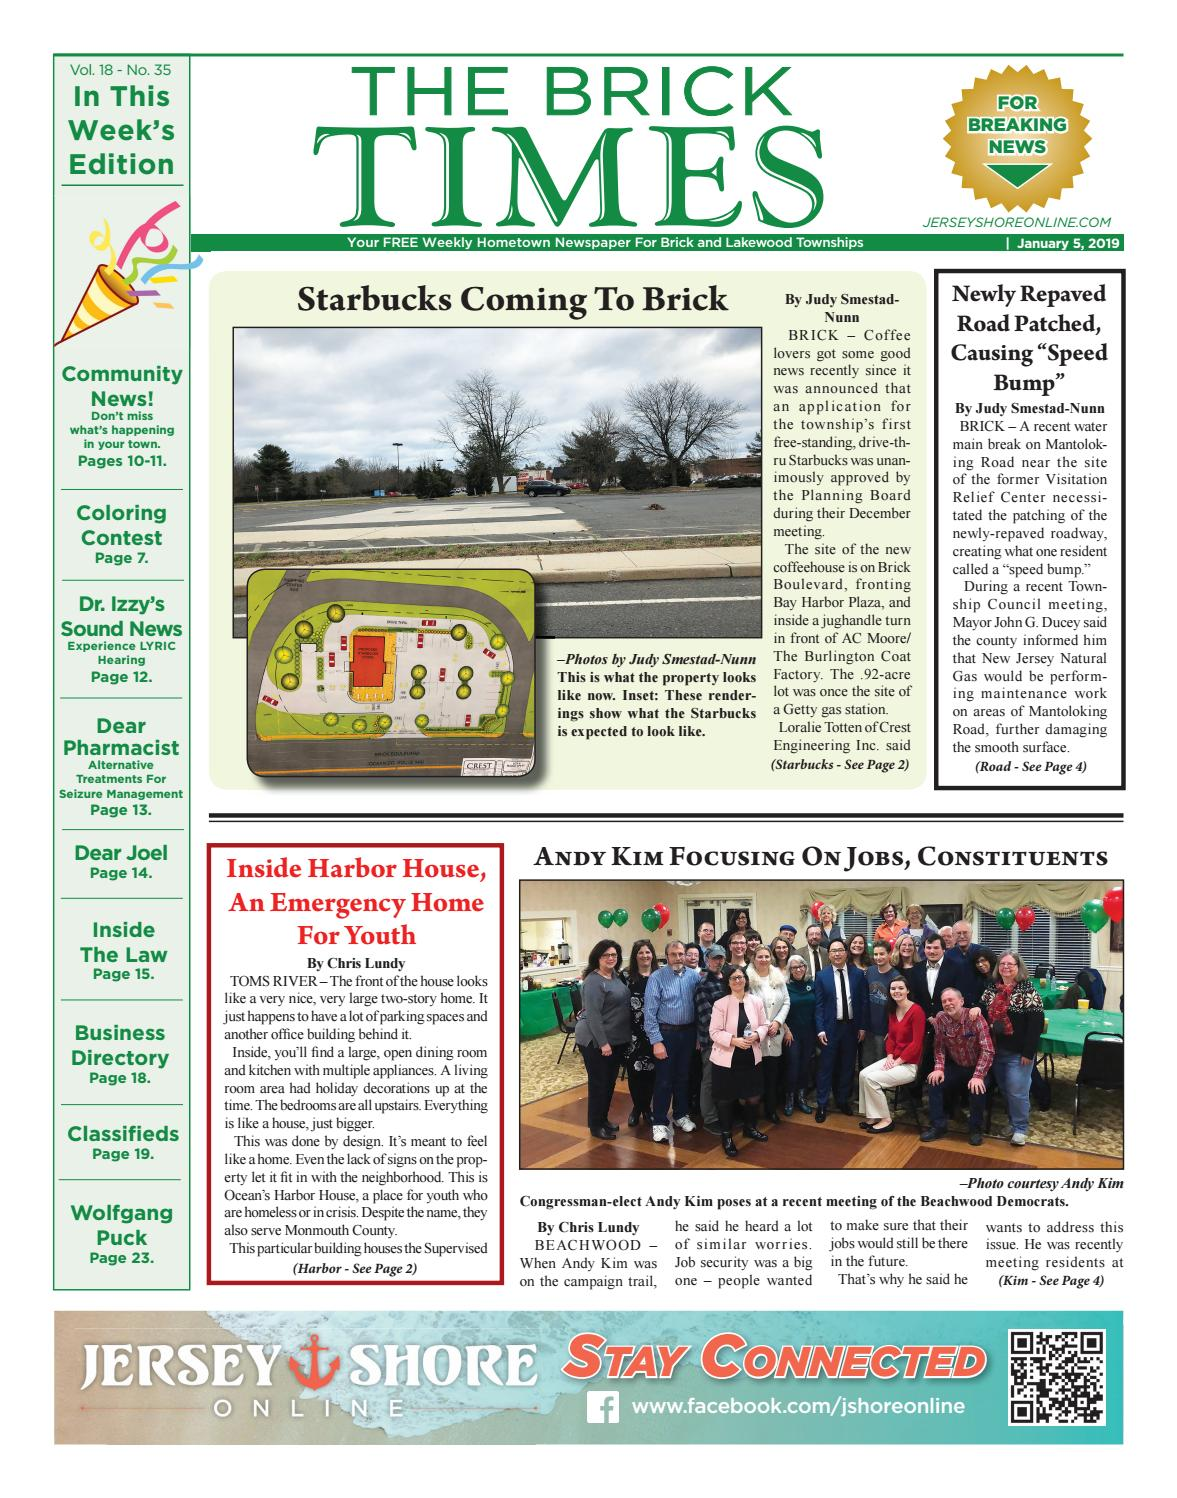 f03c3496cd 2019-01-05 - The Brick Times by Micromedia Publications/Jersey Shore Online  - issuu